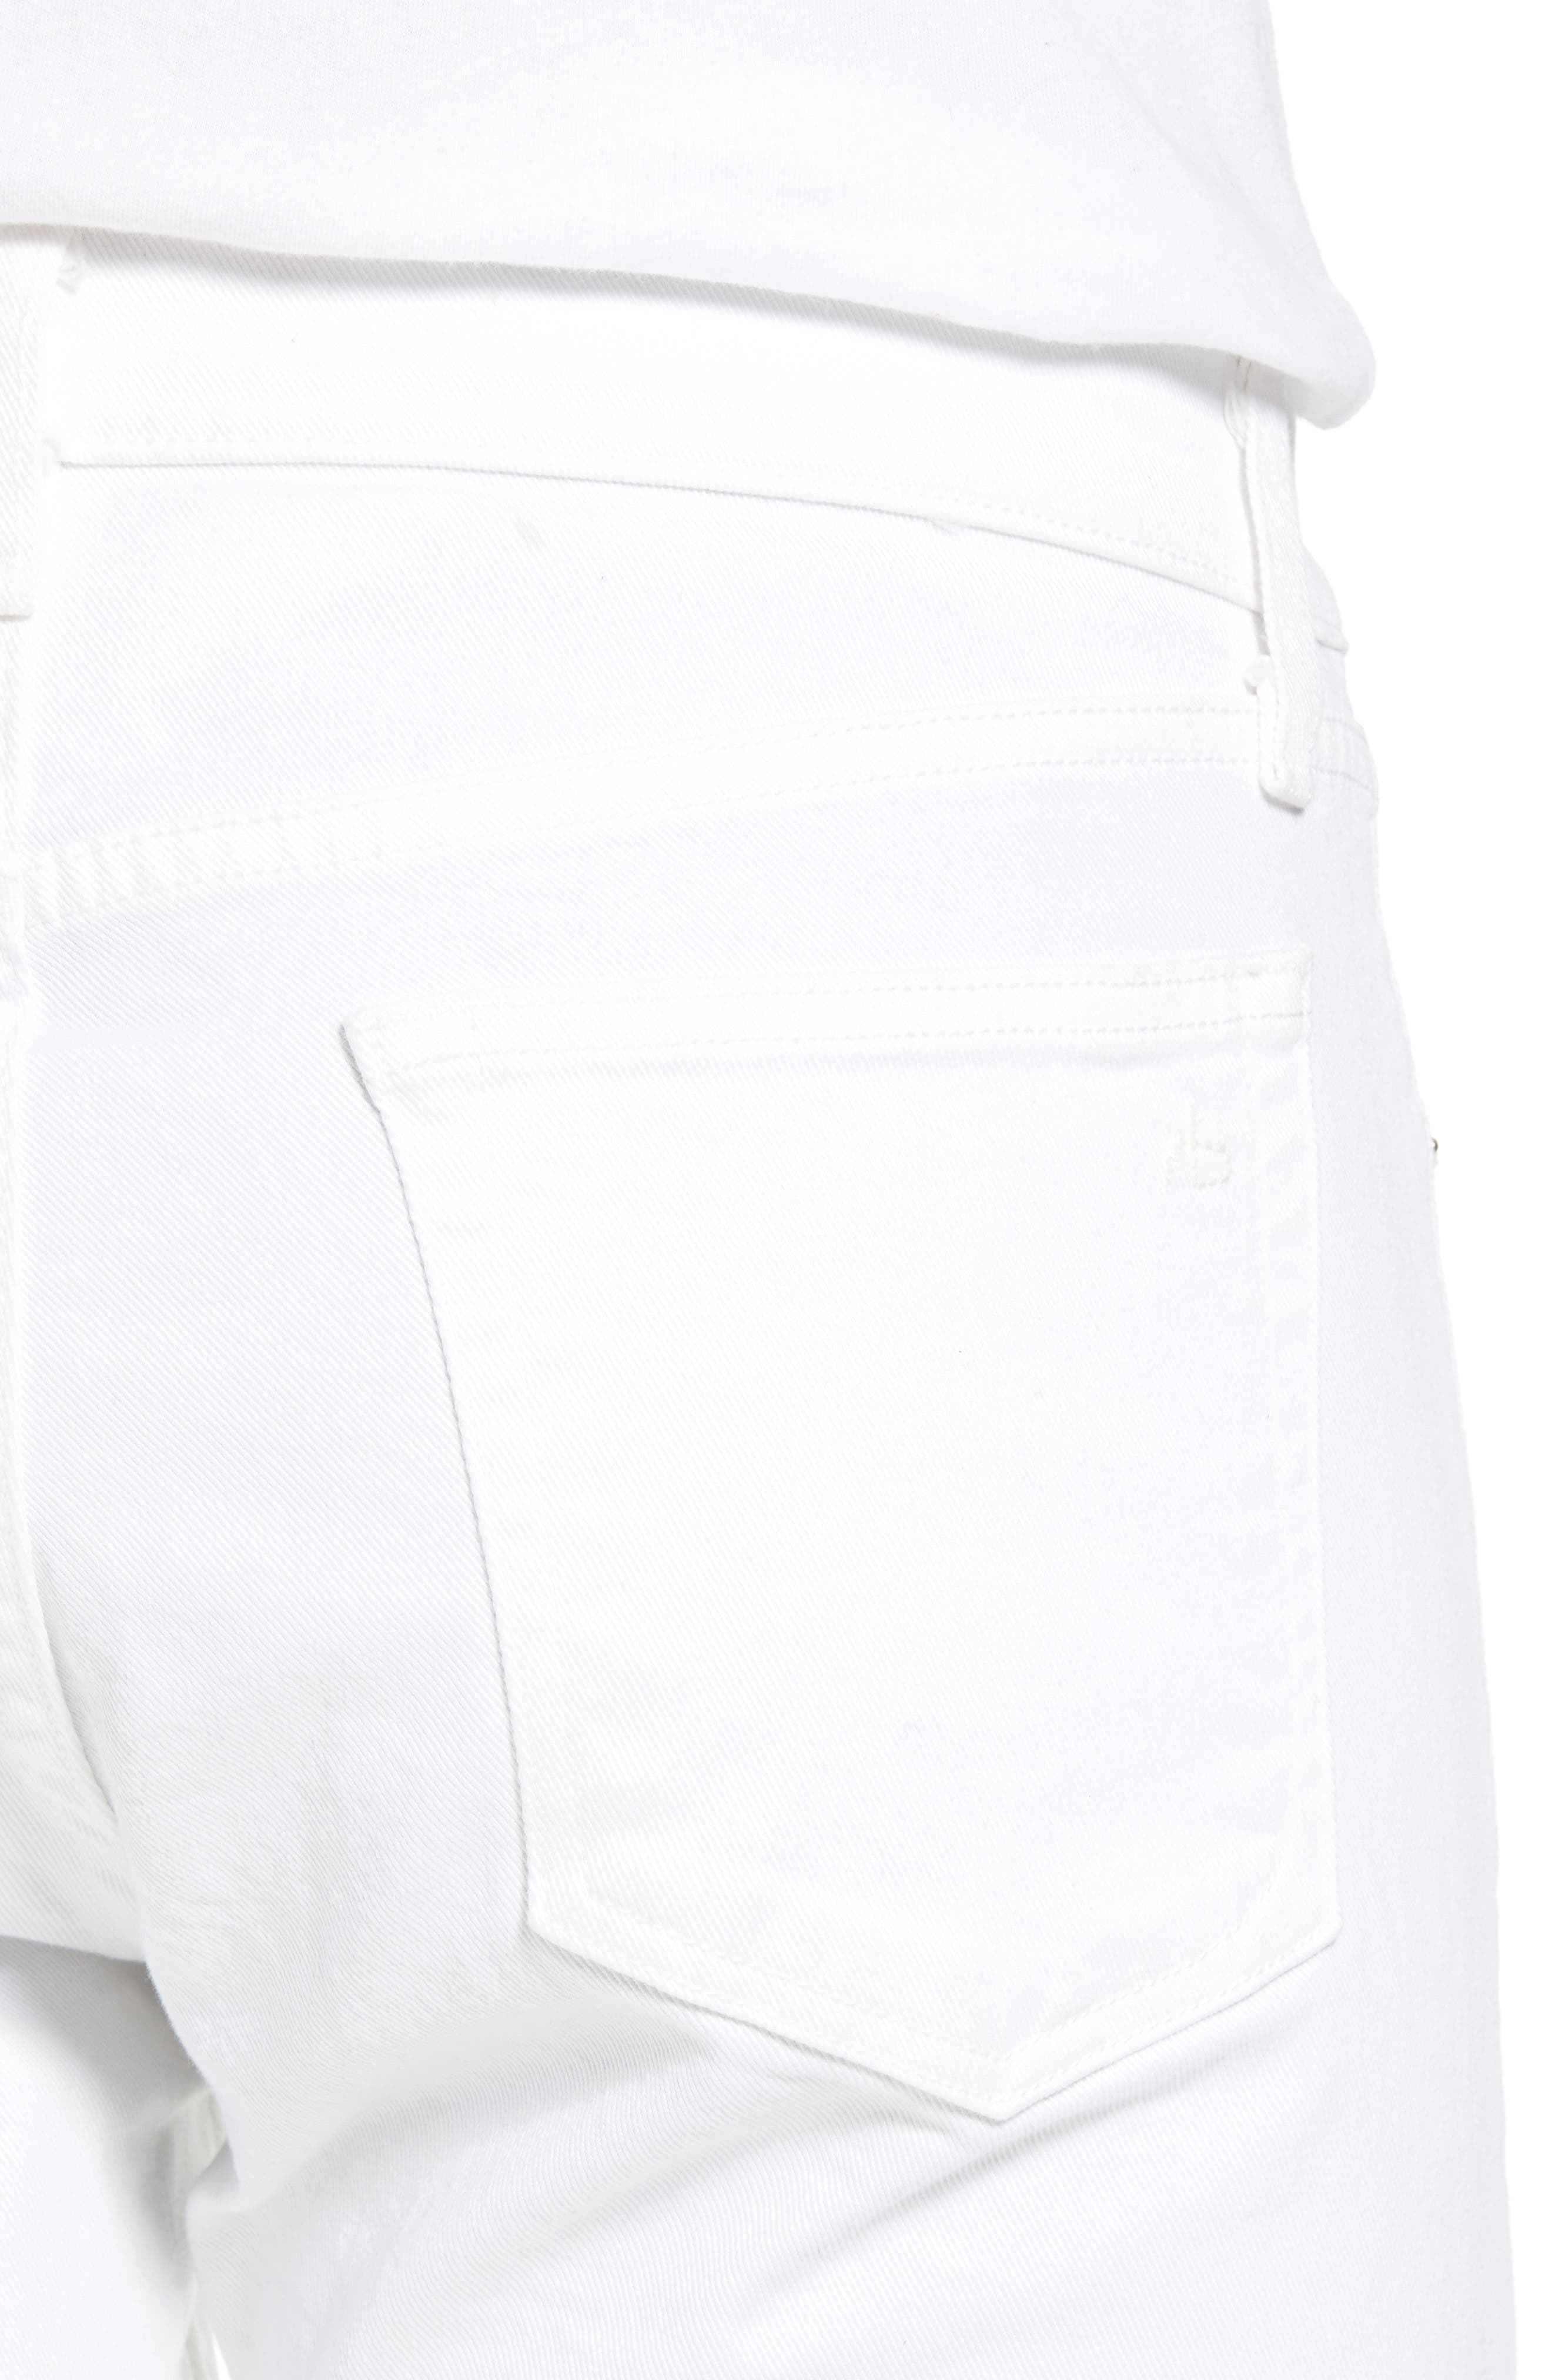 Fit 1 Skinny Fit Jeans,                             Alternate thumbnail 4, color,                             White W/ Holes